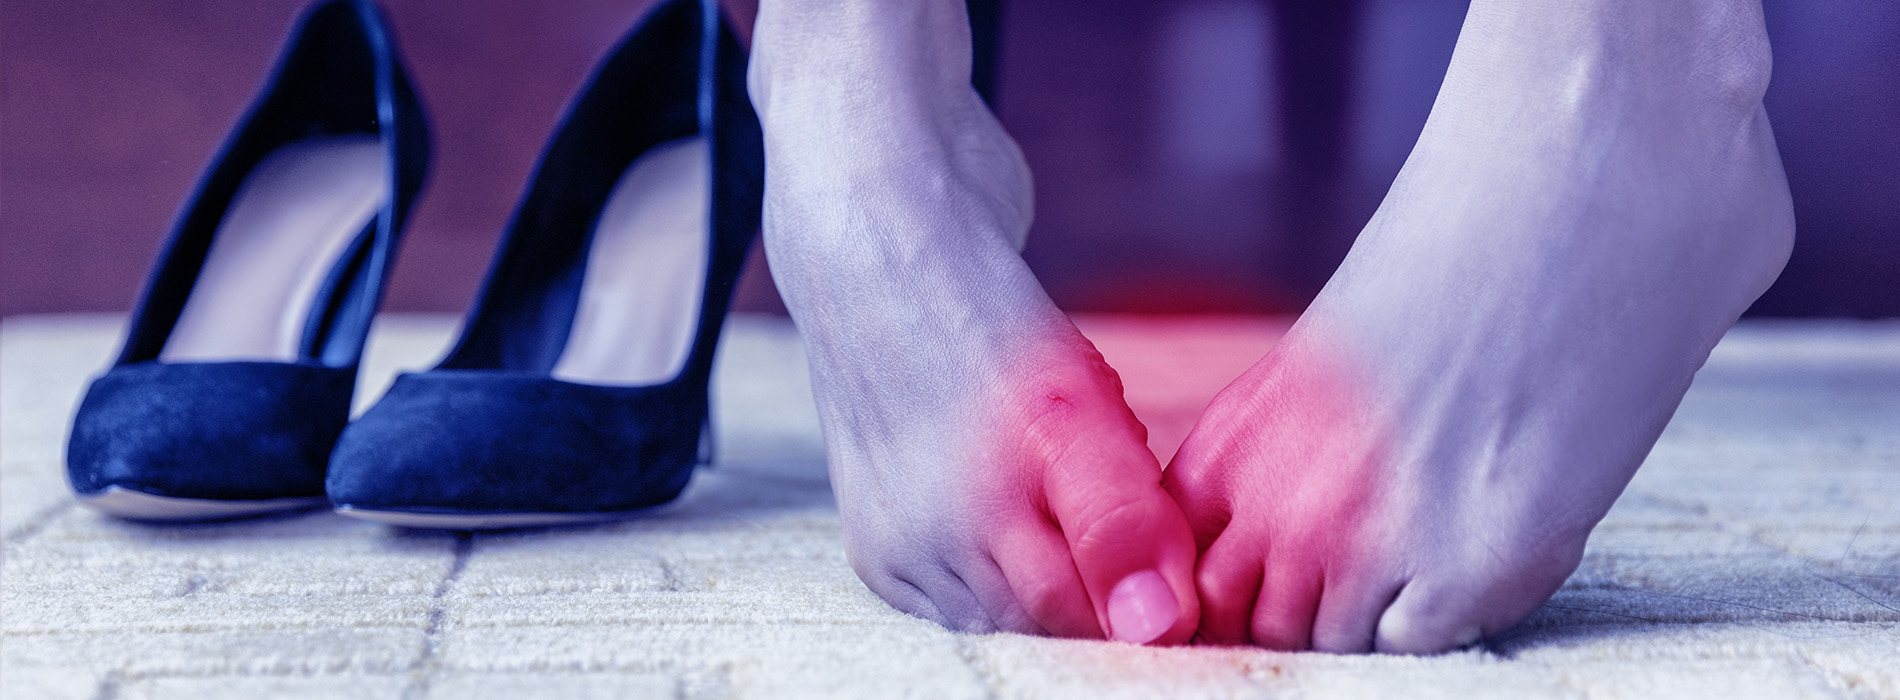 You Don't Have to Live with Bunions